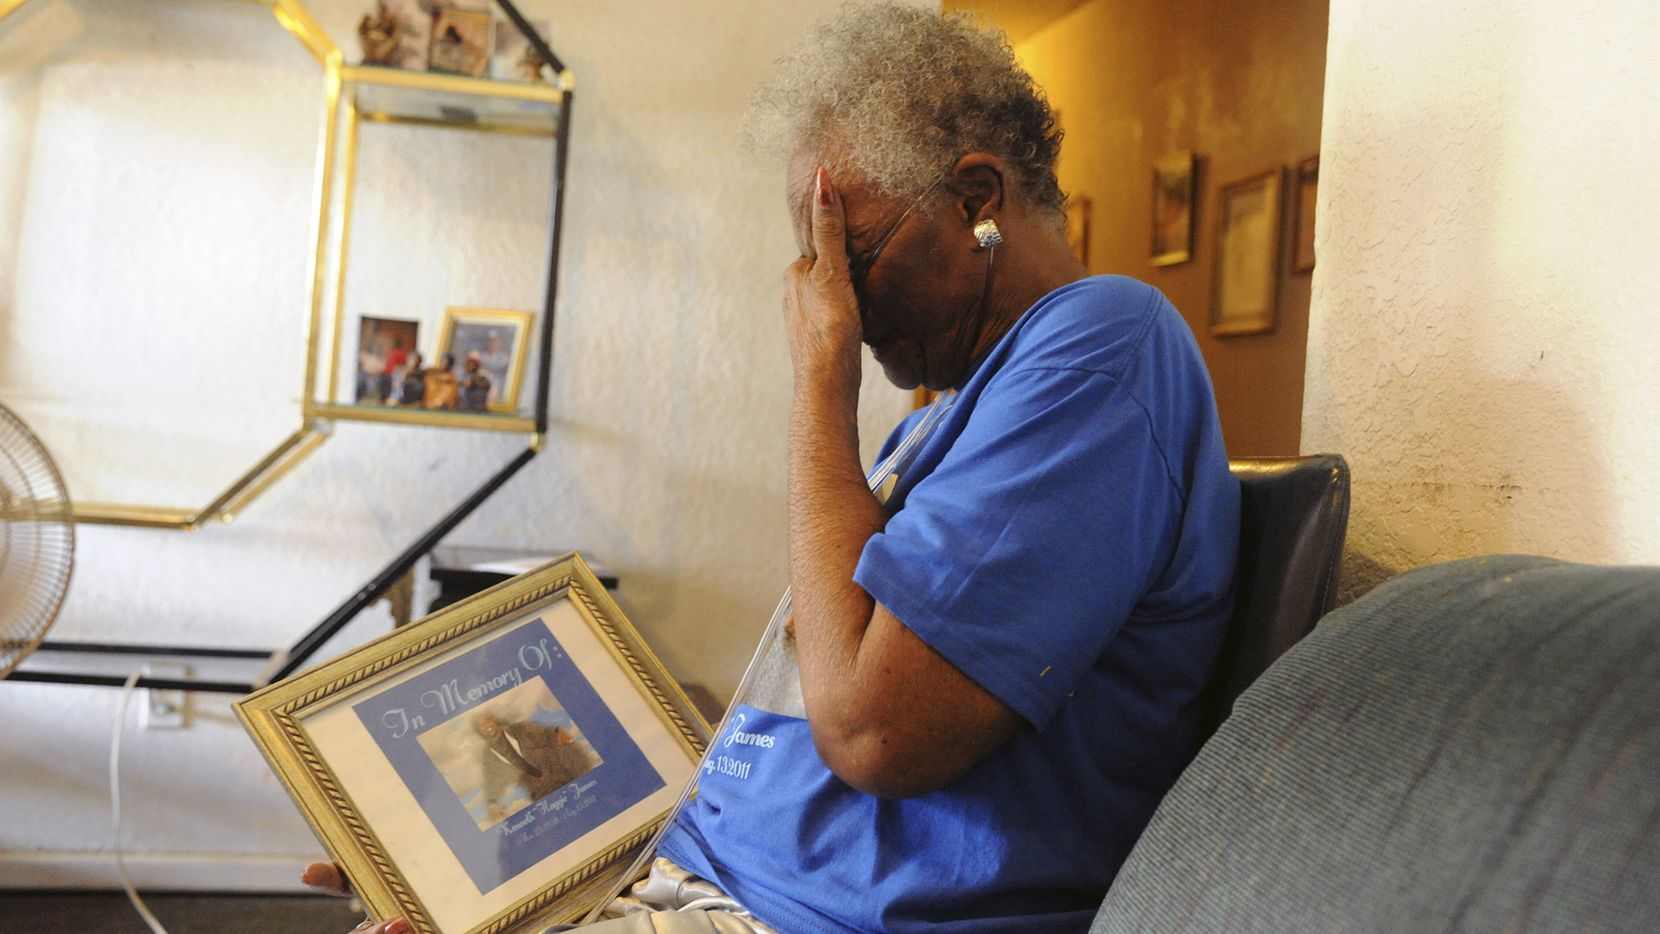 Mary Lou James cries as she looks at the photograph of her deceased son Kenneth Wayne James, who was found in his prison cell with a body temperature of 108 degrees, at her home in Lubbock, Texas, July 25, 2012. Prisoners' rights advocates believe that the lack of air-conditioning in most Texas state prisons puts inmatesÕ lives at risk. (David Bowser/The New York Times) 07292012xNEWS